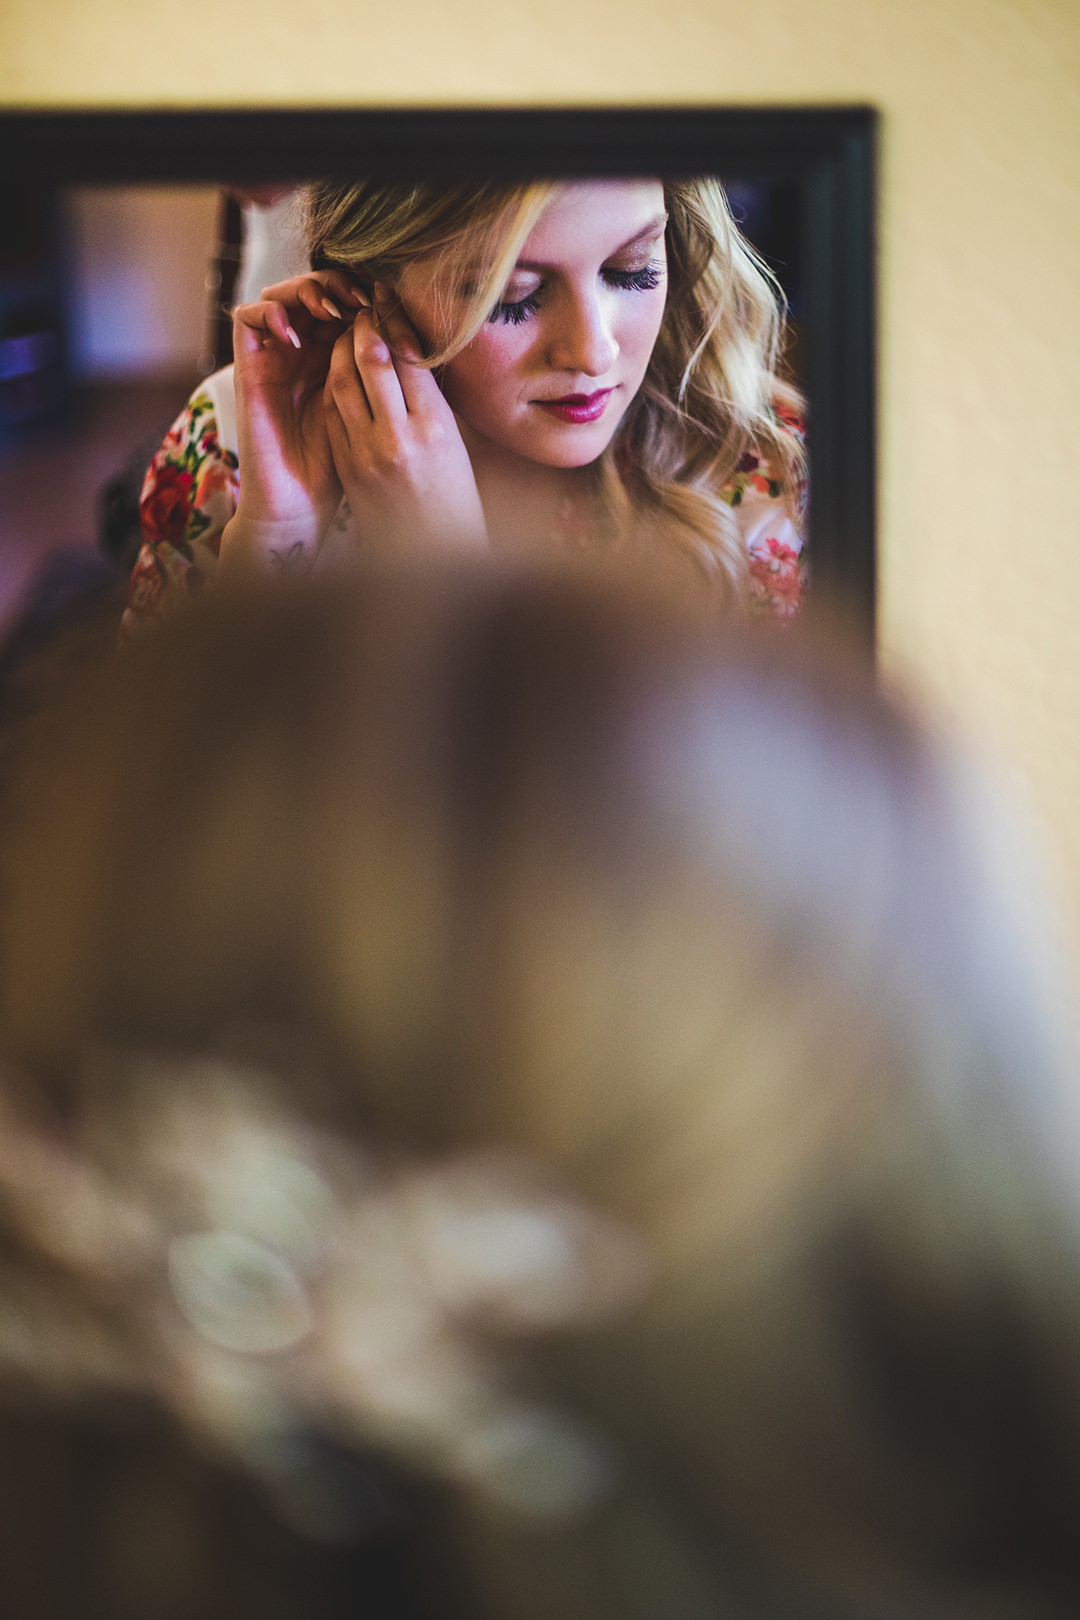 Bride putting on earrings reflected in the mirror